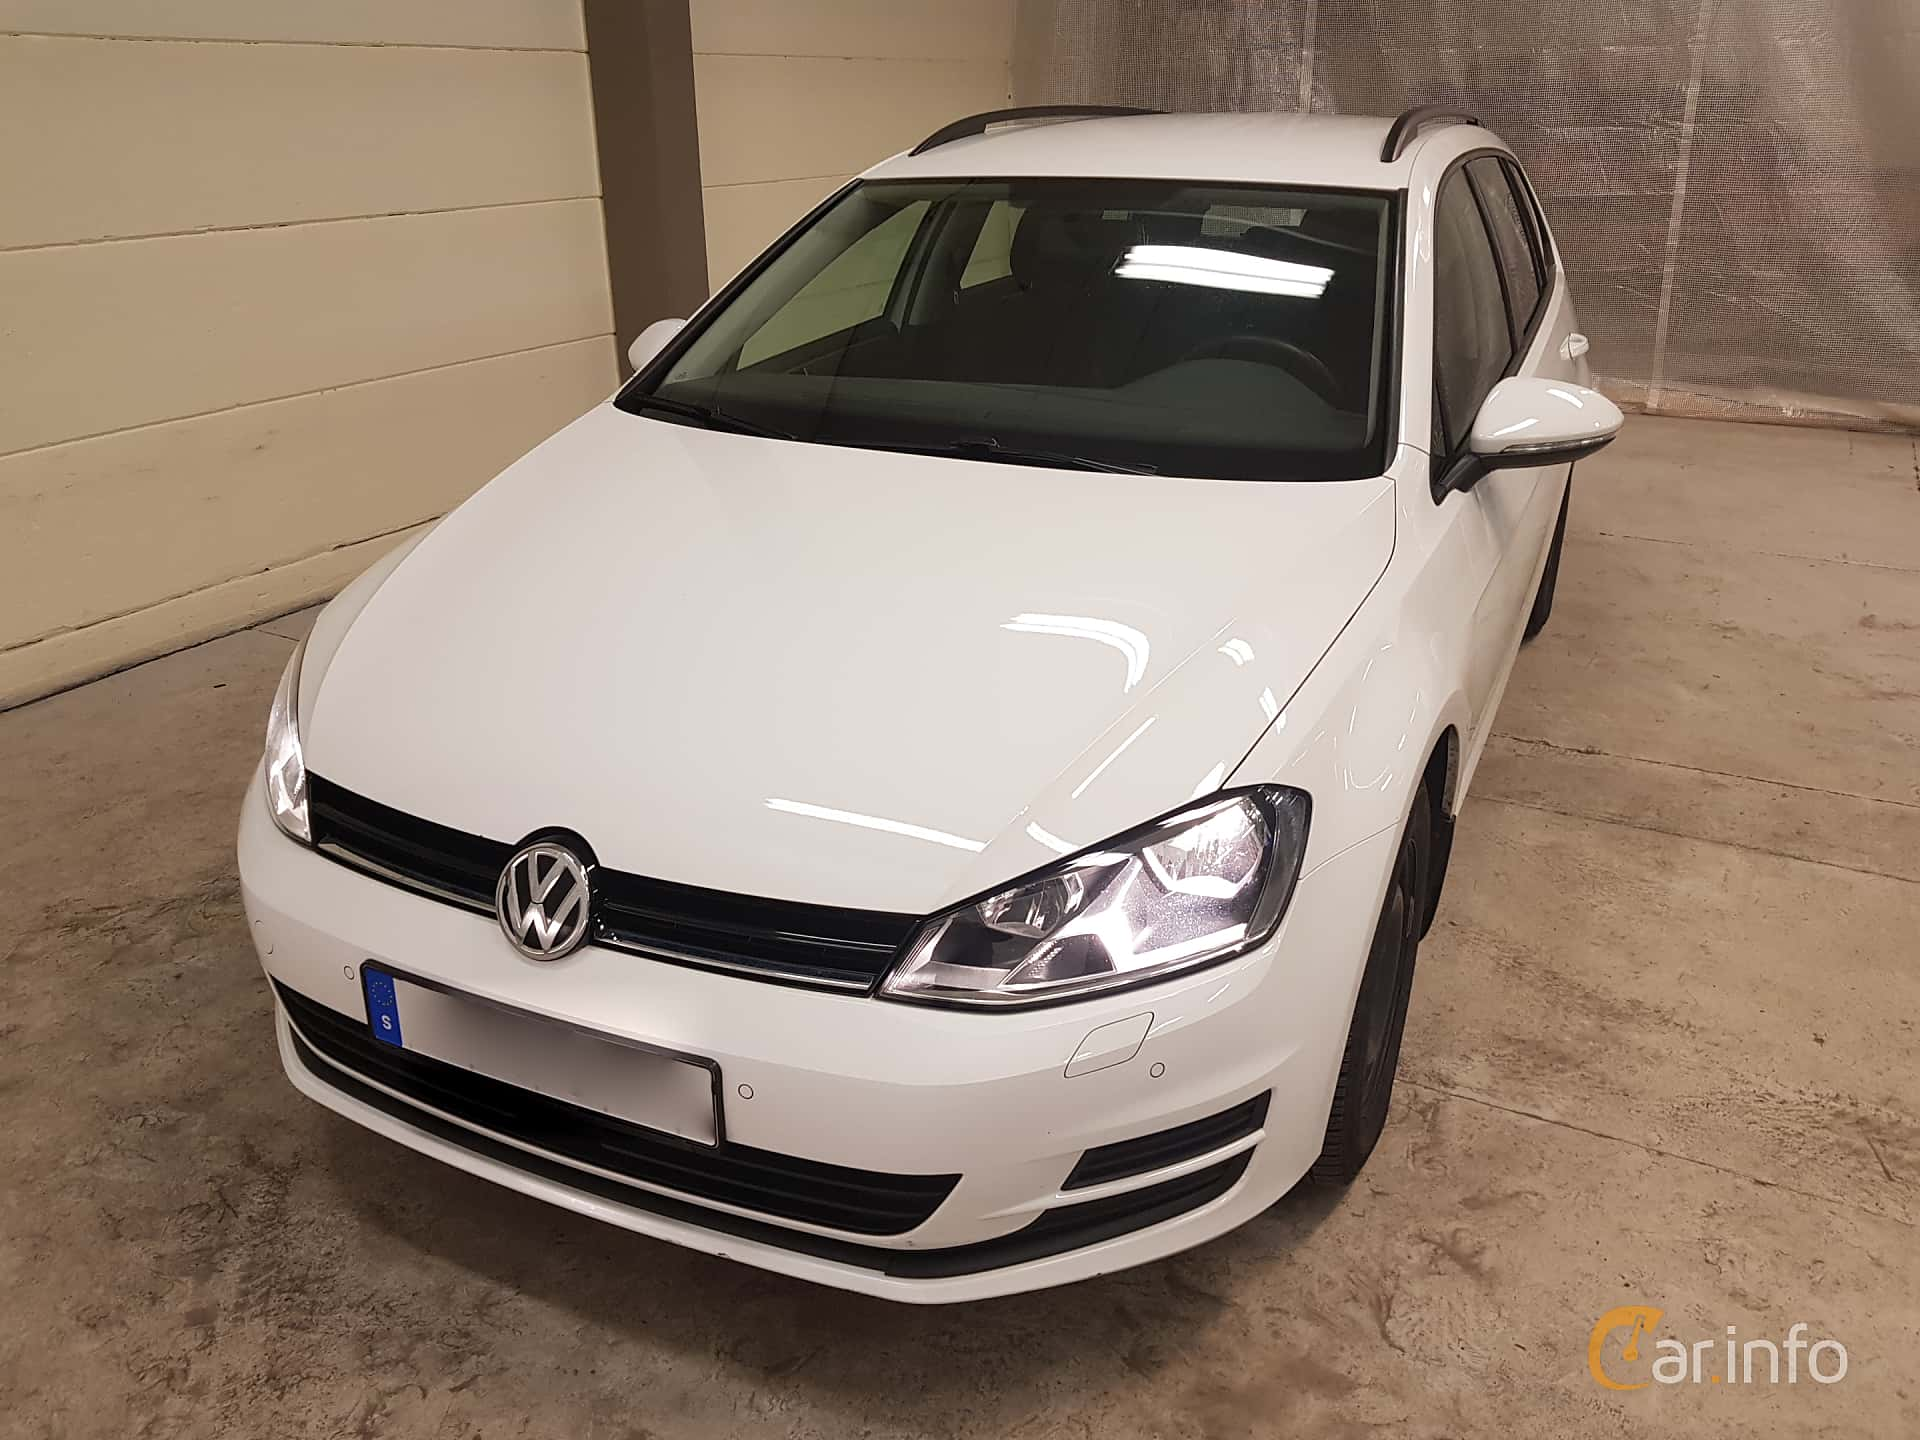 Volkswagen Golf Variant 1.2 TSI Manual, 110hp, 2016